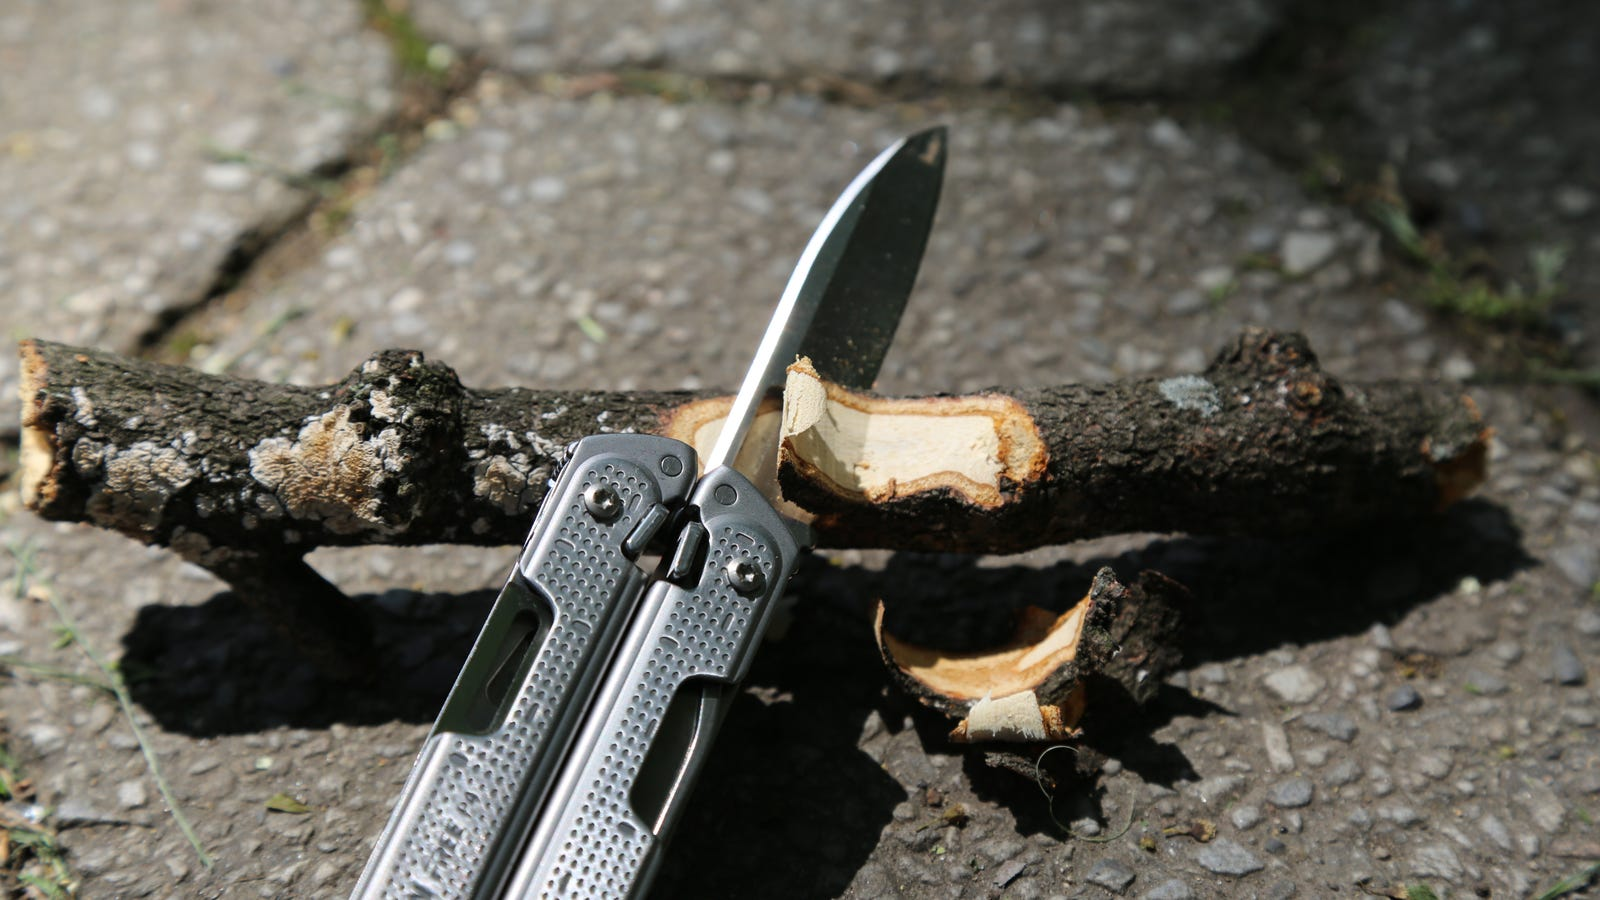 The Leatherman Free P4 is still great at whittling sticks.